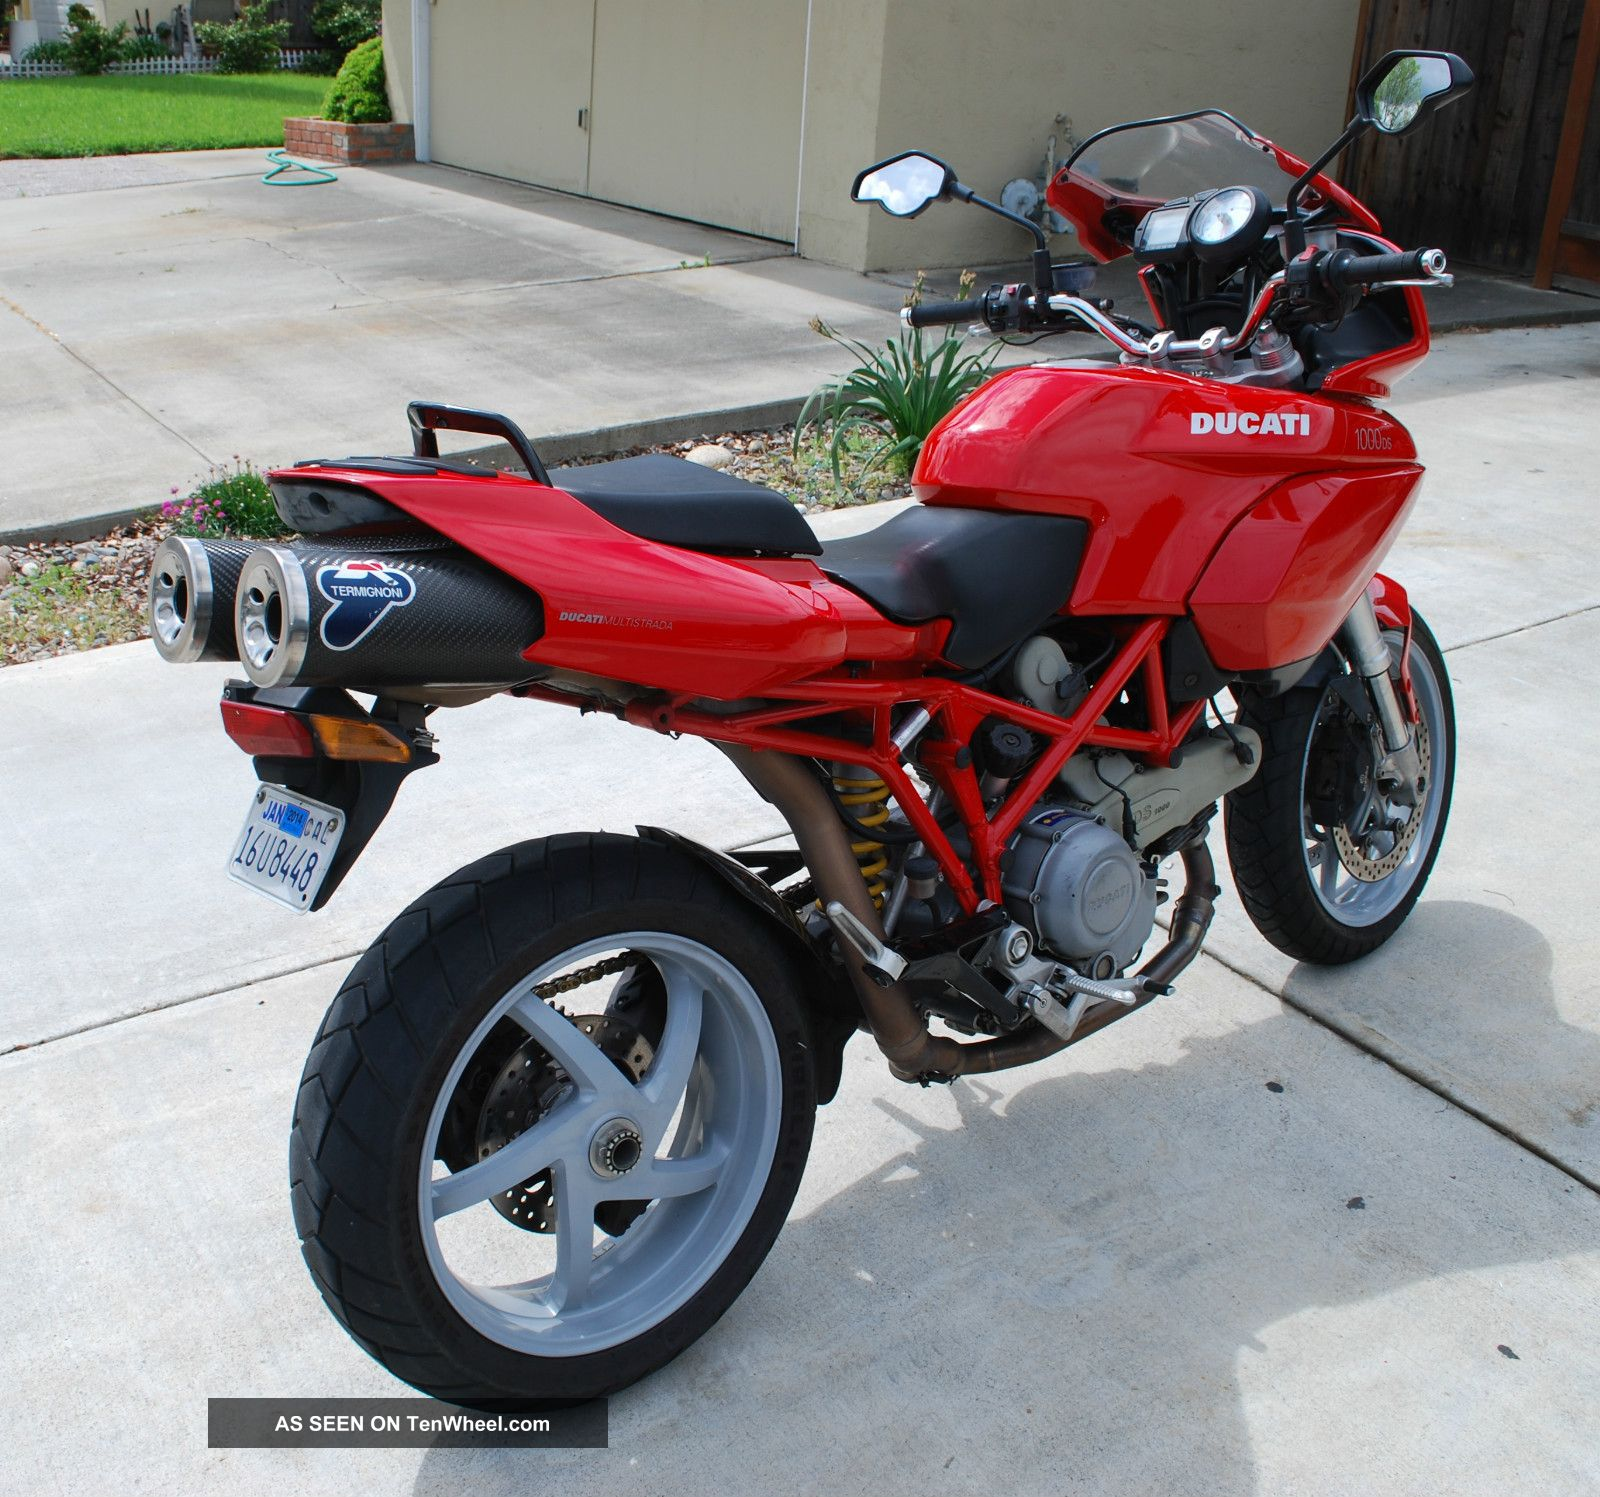 2004 Ducati Multistrada 1000 DS #3